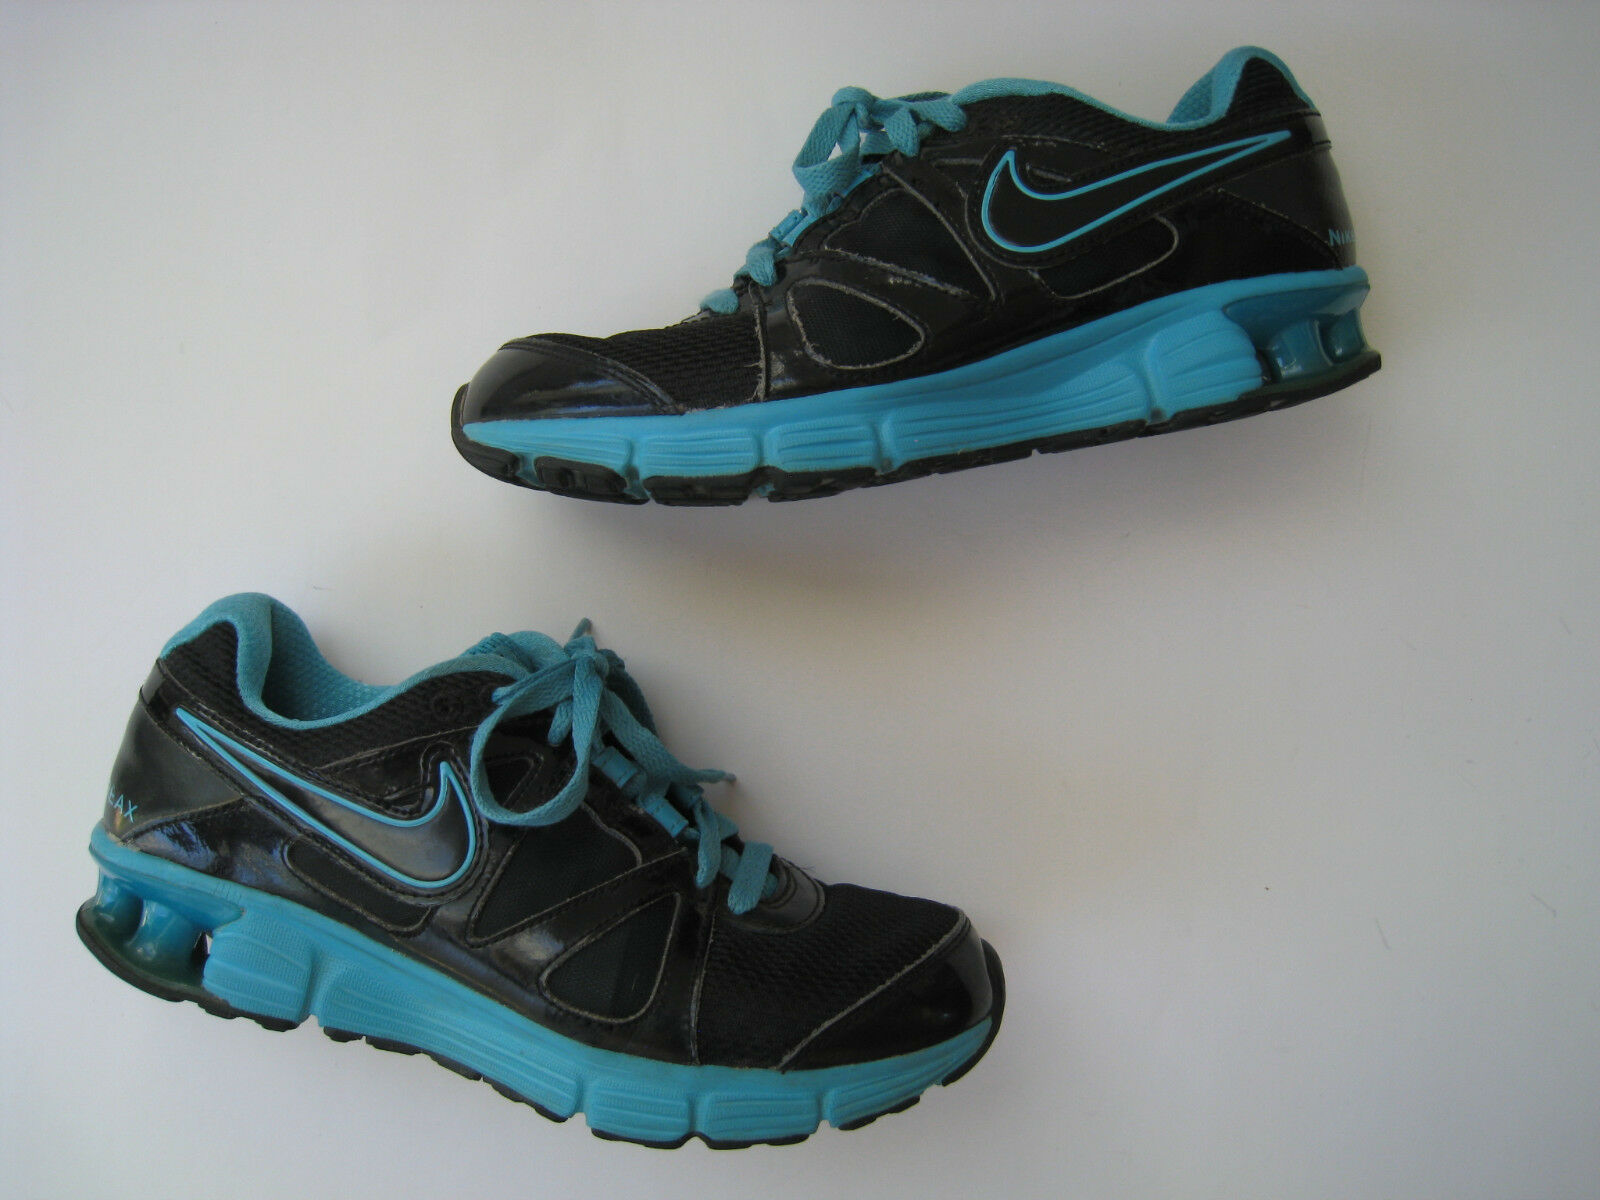 NIKE RELAX RUNNING SHOES WMNS US 8 BLUE - BLACK 454175-004 NICE New shoes for men and women, limited time discount